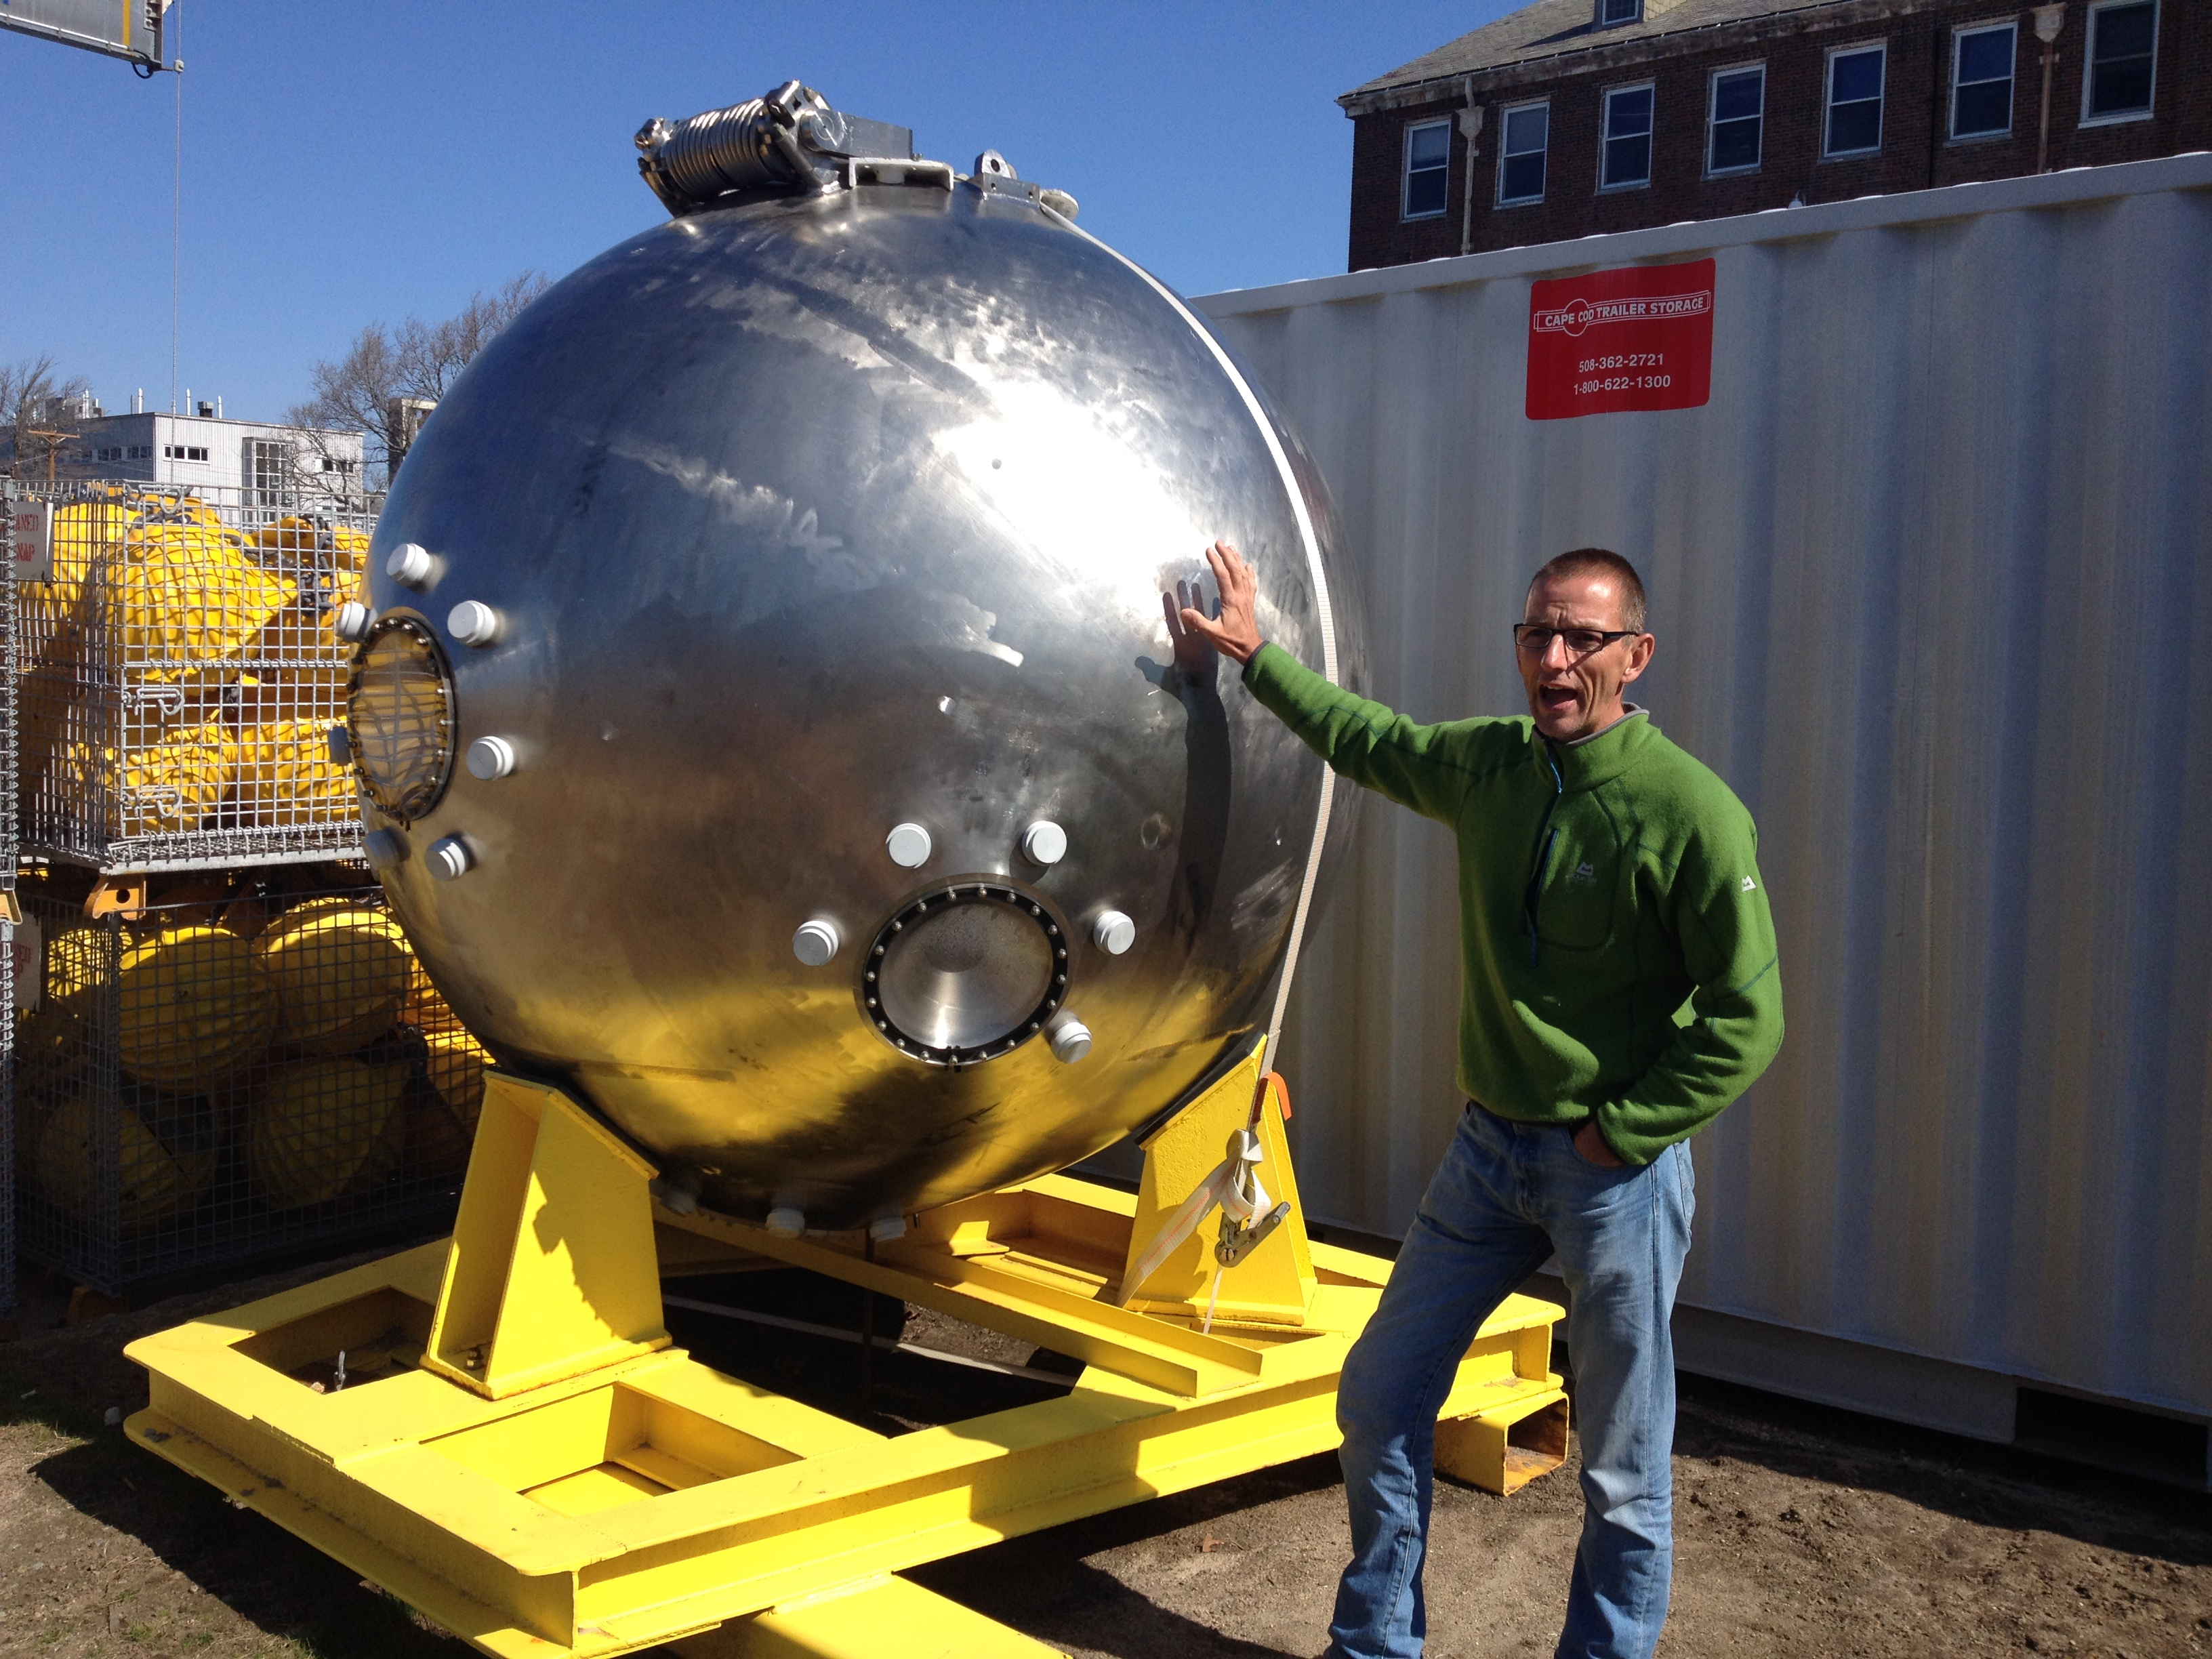 Phil Short standing next to the Alvin sphere, the minisub that located the Titanic's wreck